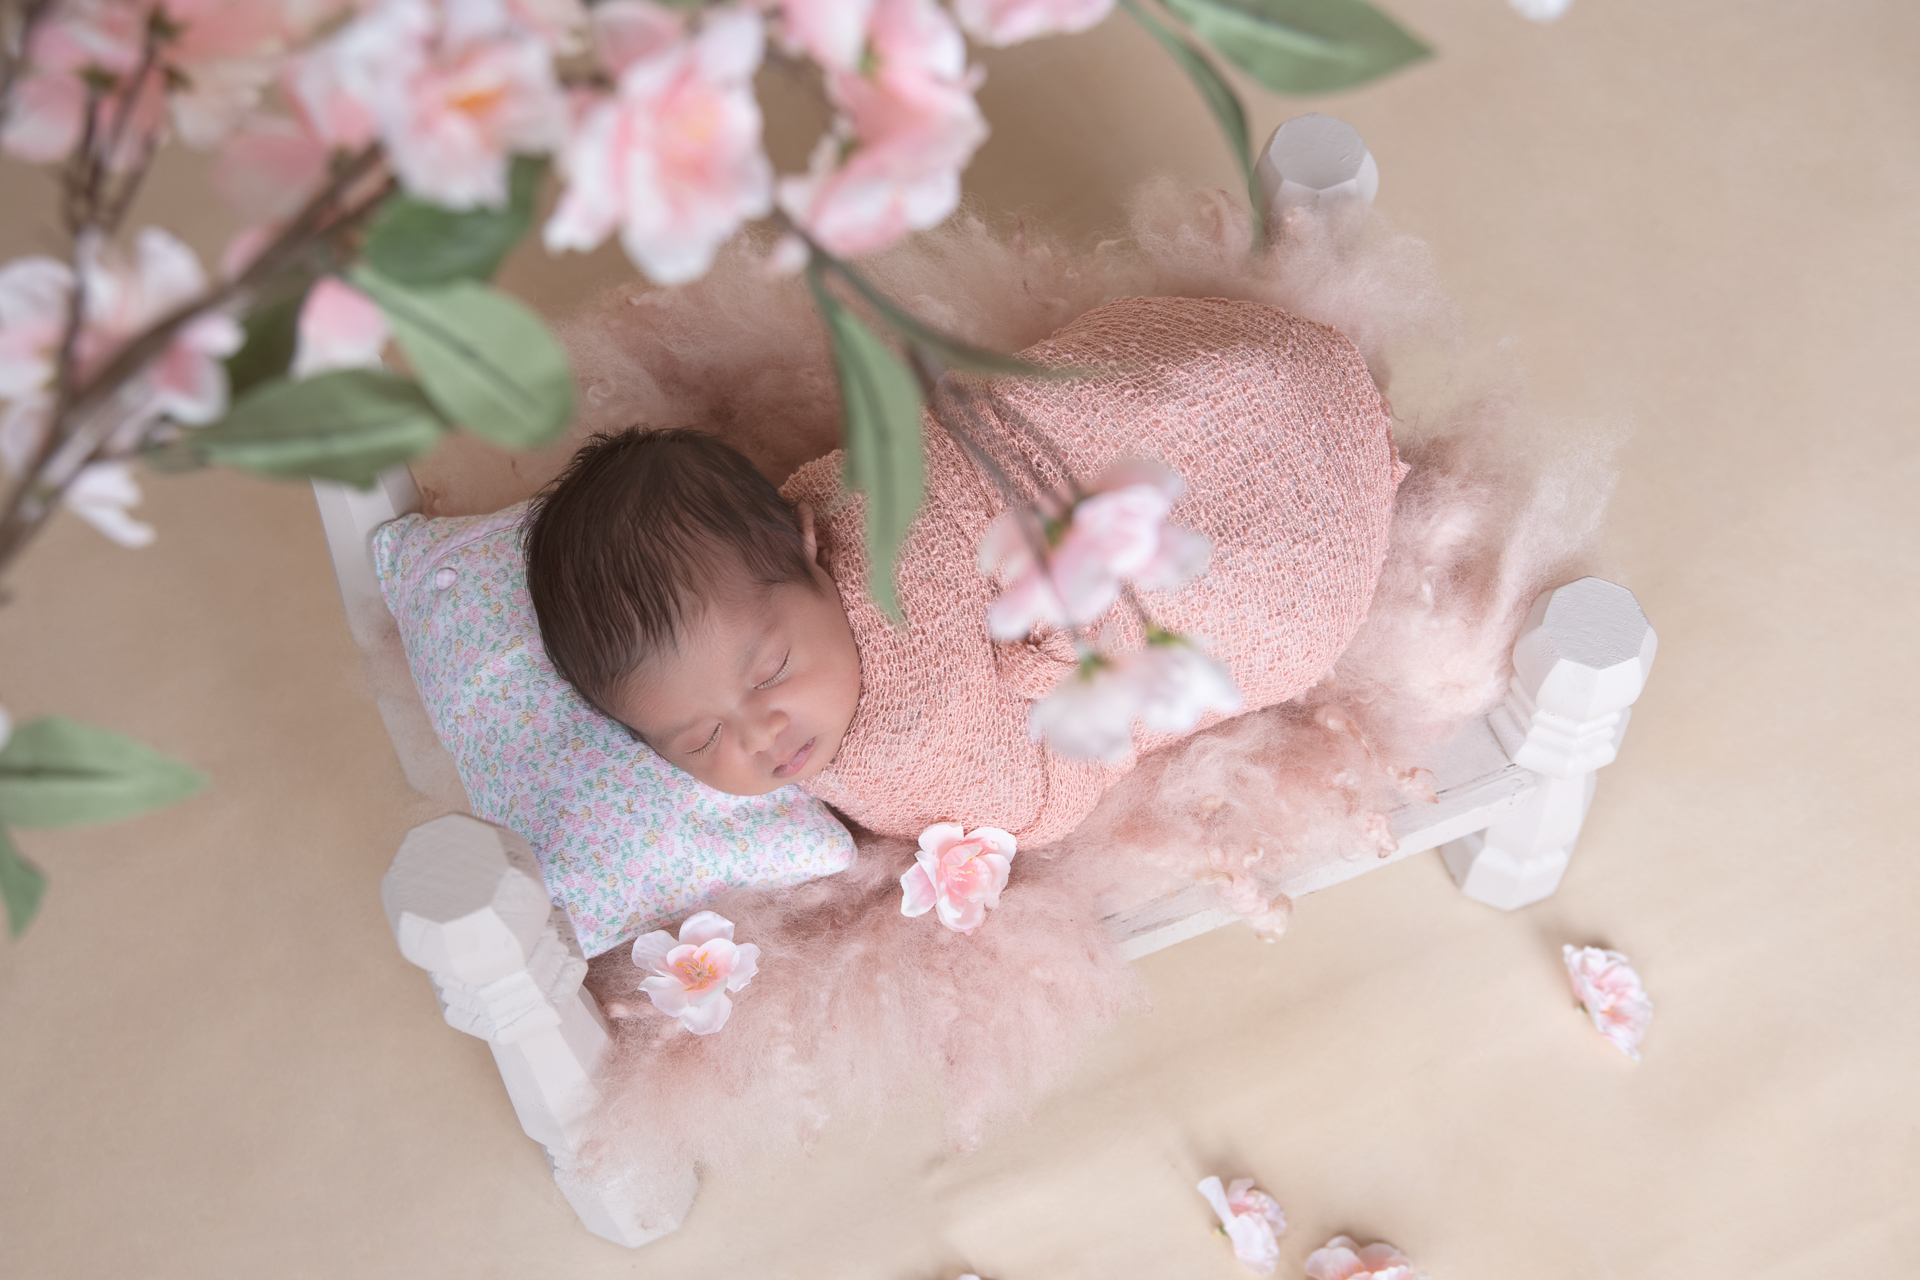 Newborn rests on bed prop while wearing pink wrap. Flowers decorate the scene. Beige backdrop.